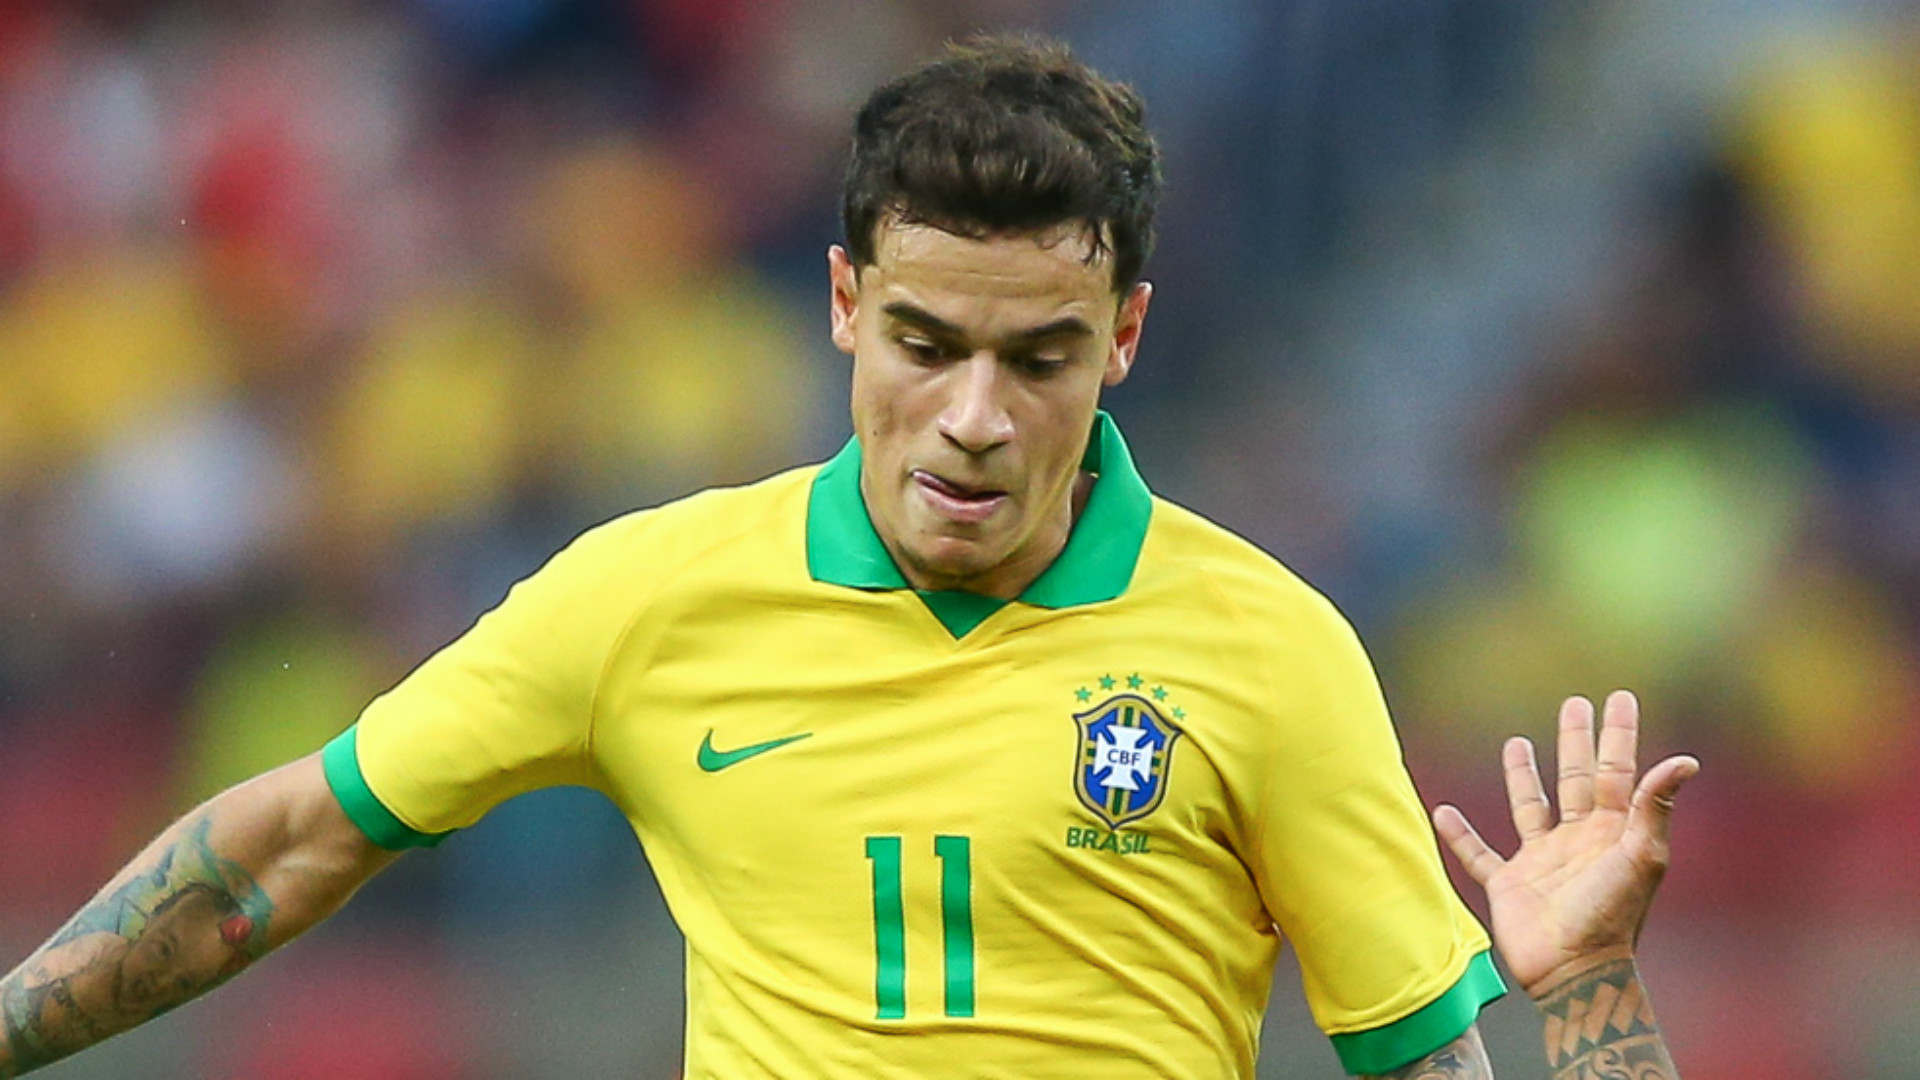 Arsenal fans are keen to see the Gunners sign Coutinho this summer